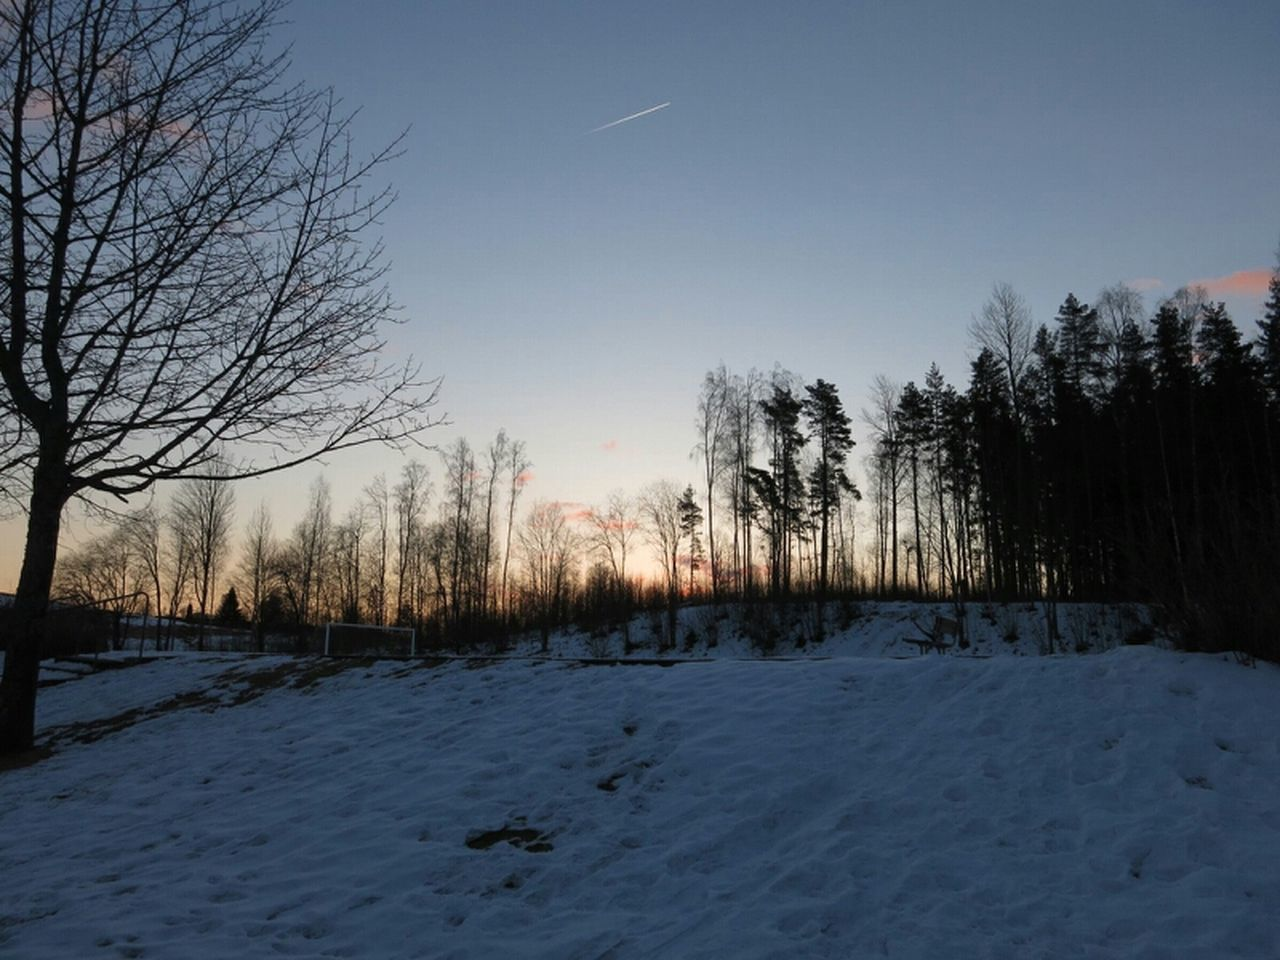 snow, winter, cold temperature, nature, weather, tree, tranquility, bare tree, beauty in nature, cold, scenics, no people, tranquil scene, outdoors, landscape, frozen, sky, day, sunset